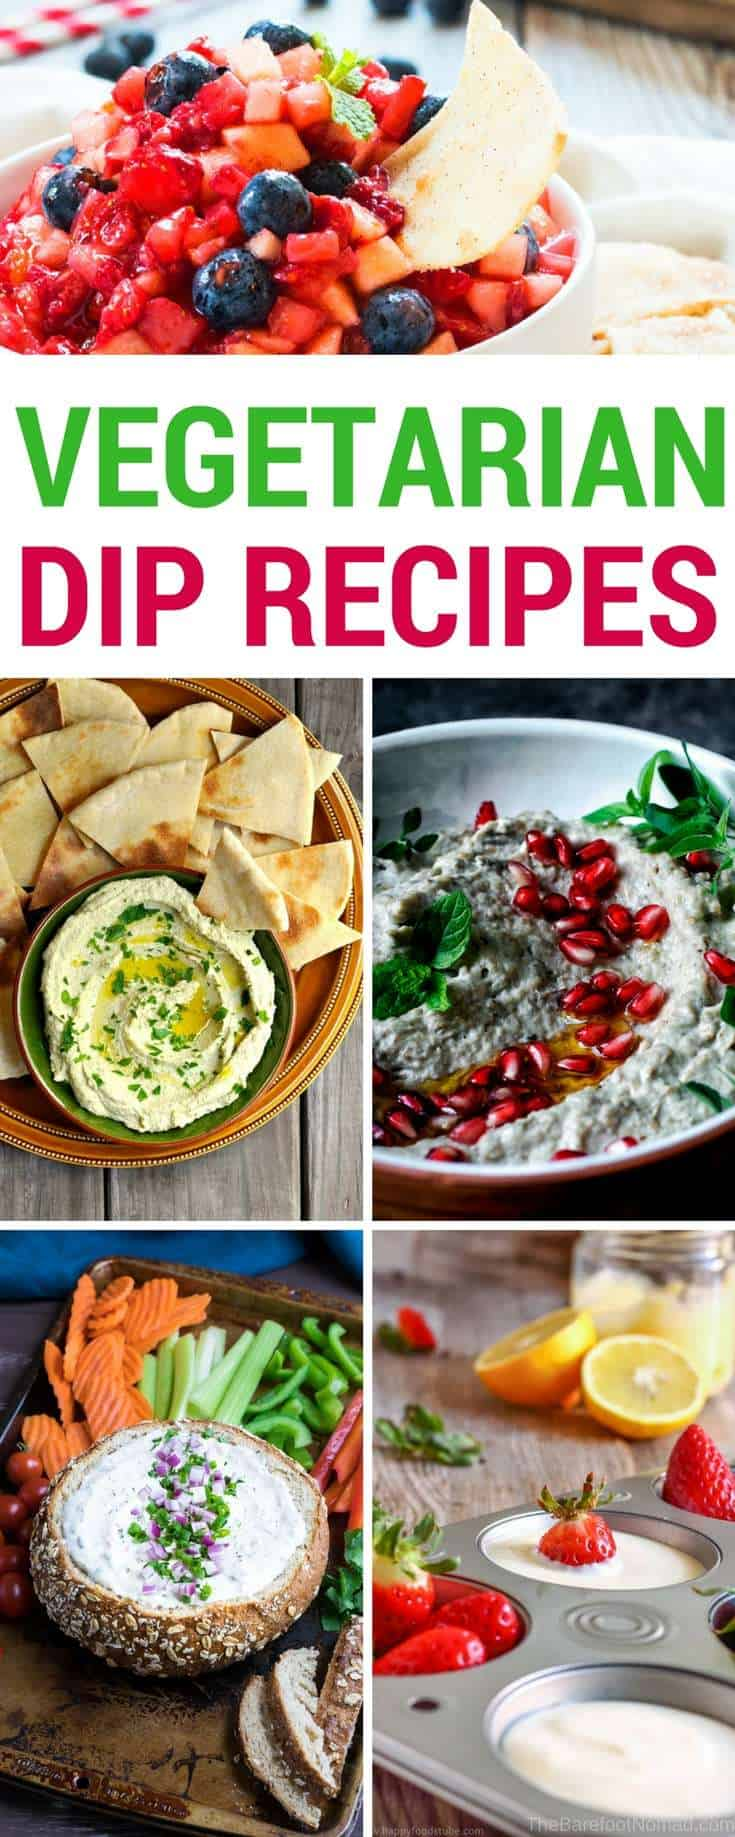 Best vegetarian dips! Looking for some easy and tasty vegetarian dip recipes! We love dips in our house, and these are some of our favorites, including cheese dips, spinach dips, fruit dips, and even chocolate and dessert dips for the vegetarian dip lover!